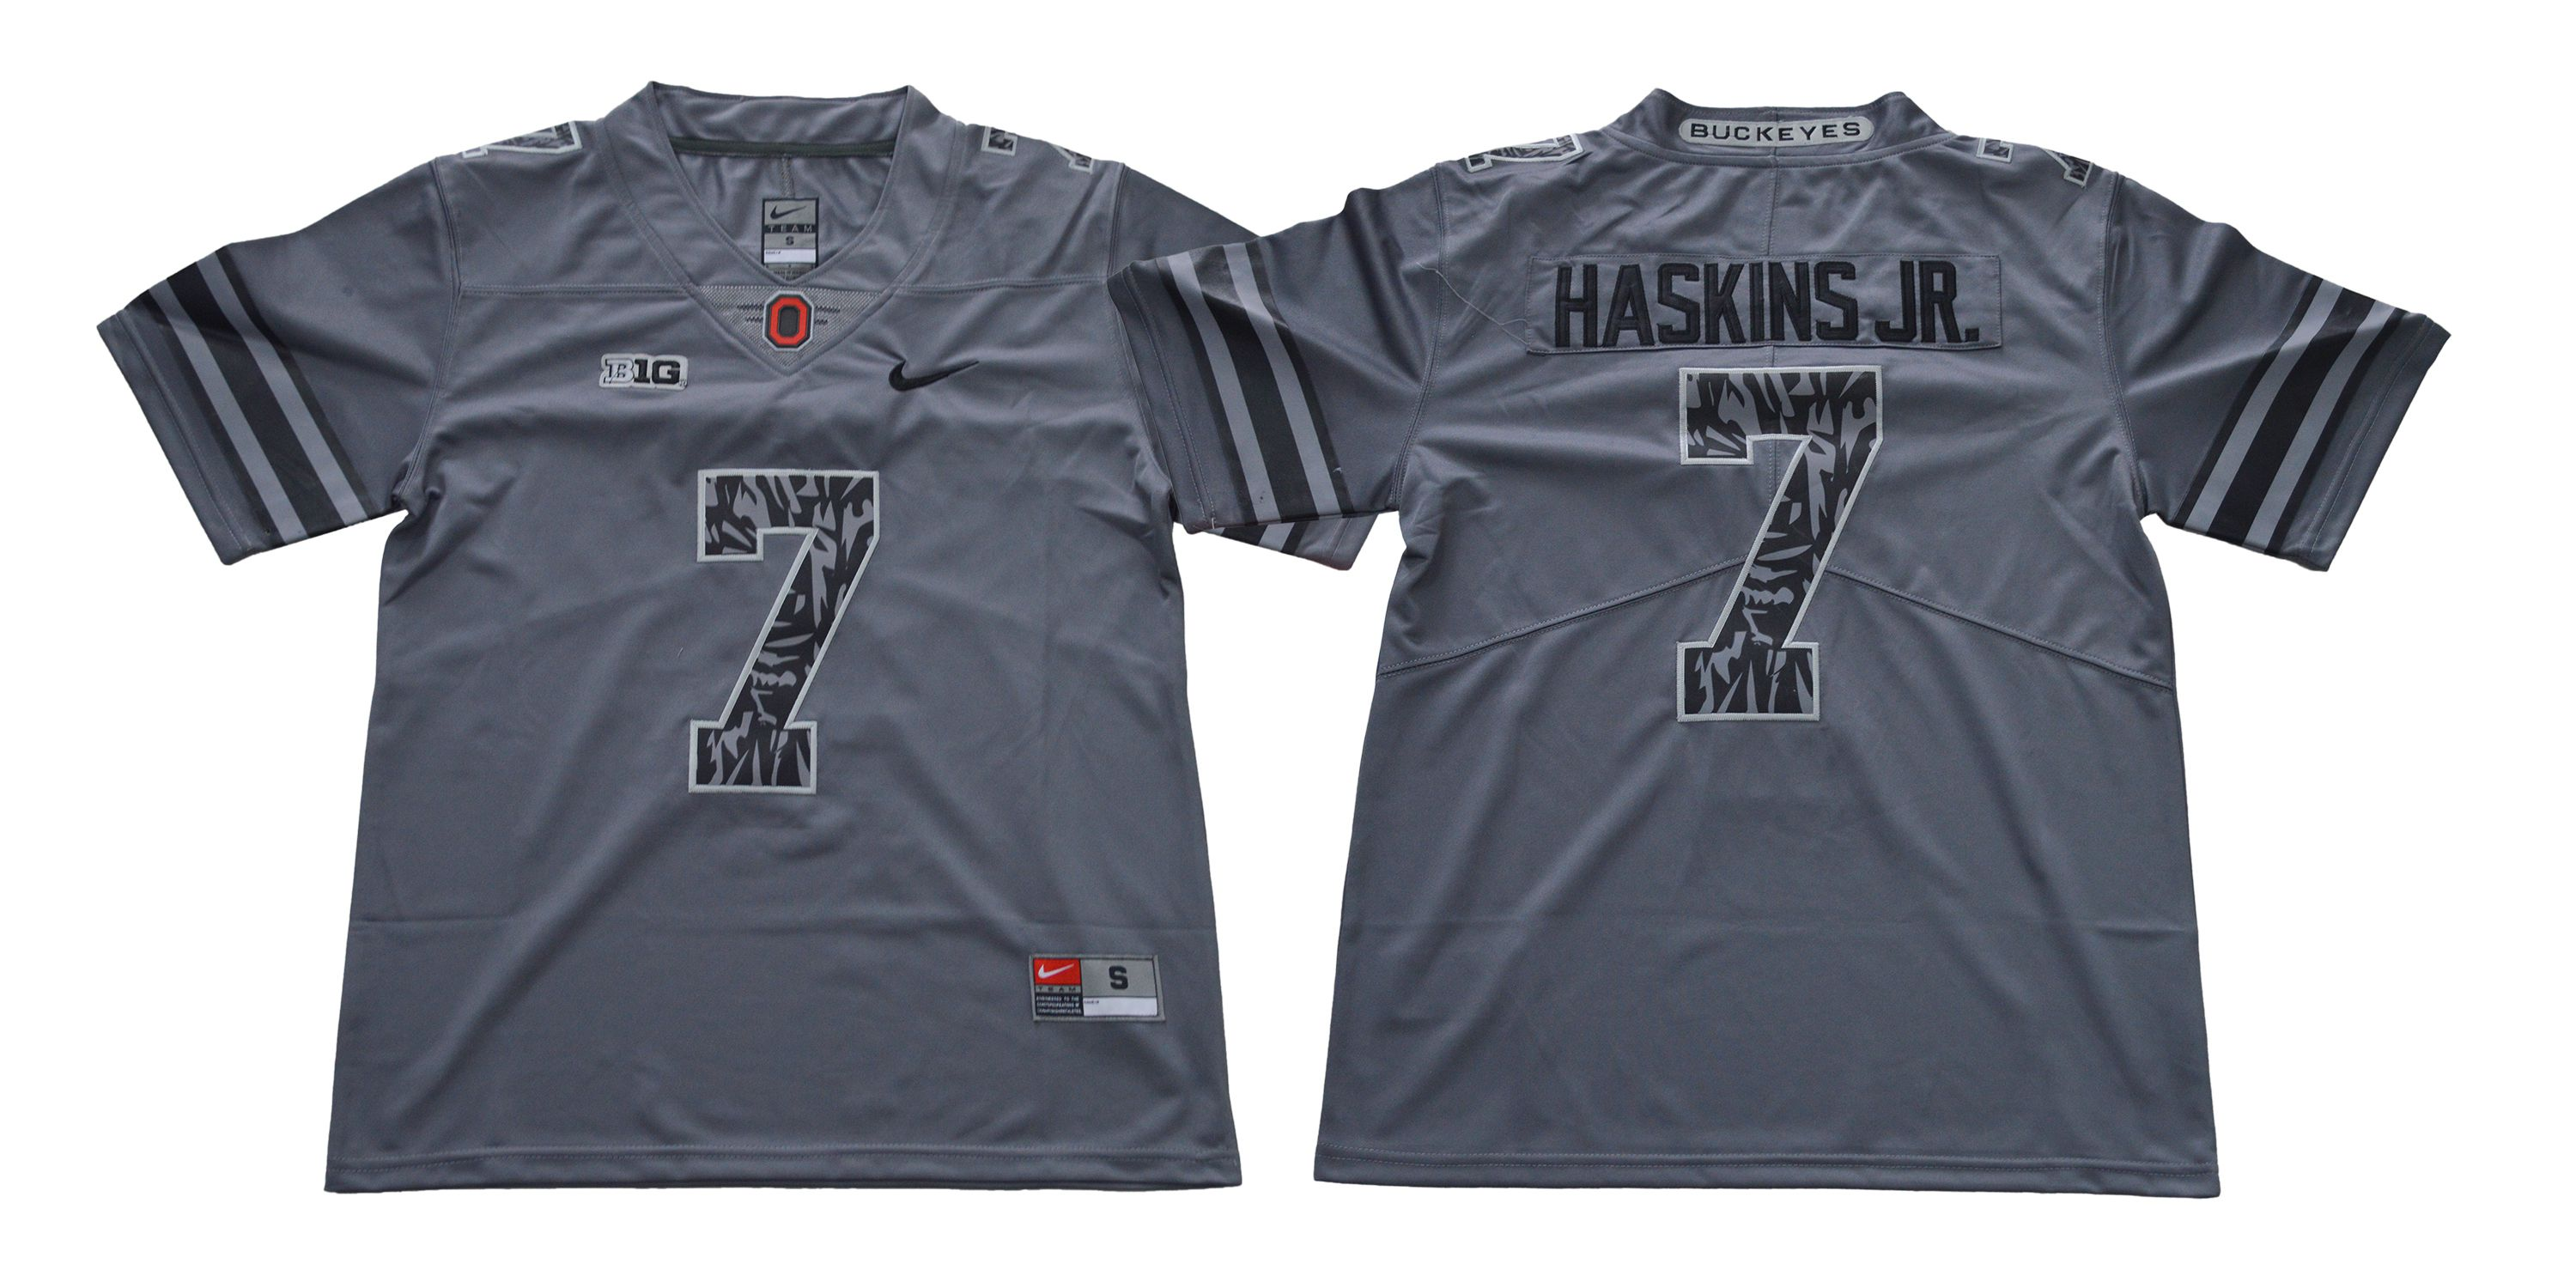 Men Ohio State Buckeyes 7 Haskins jr Grey Nike NCAA Jerseys